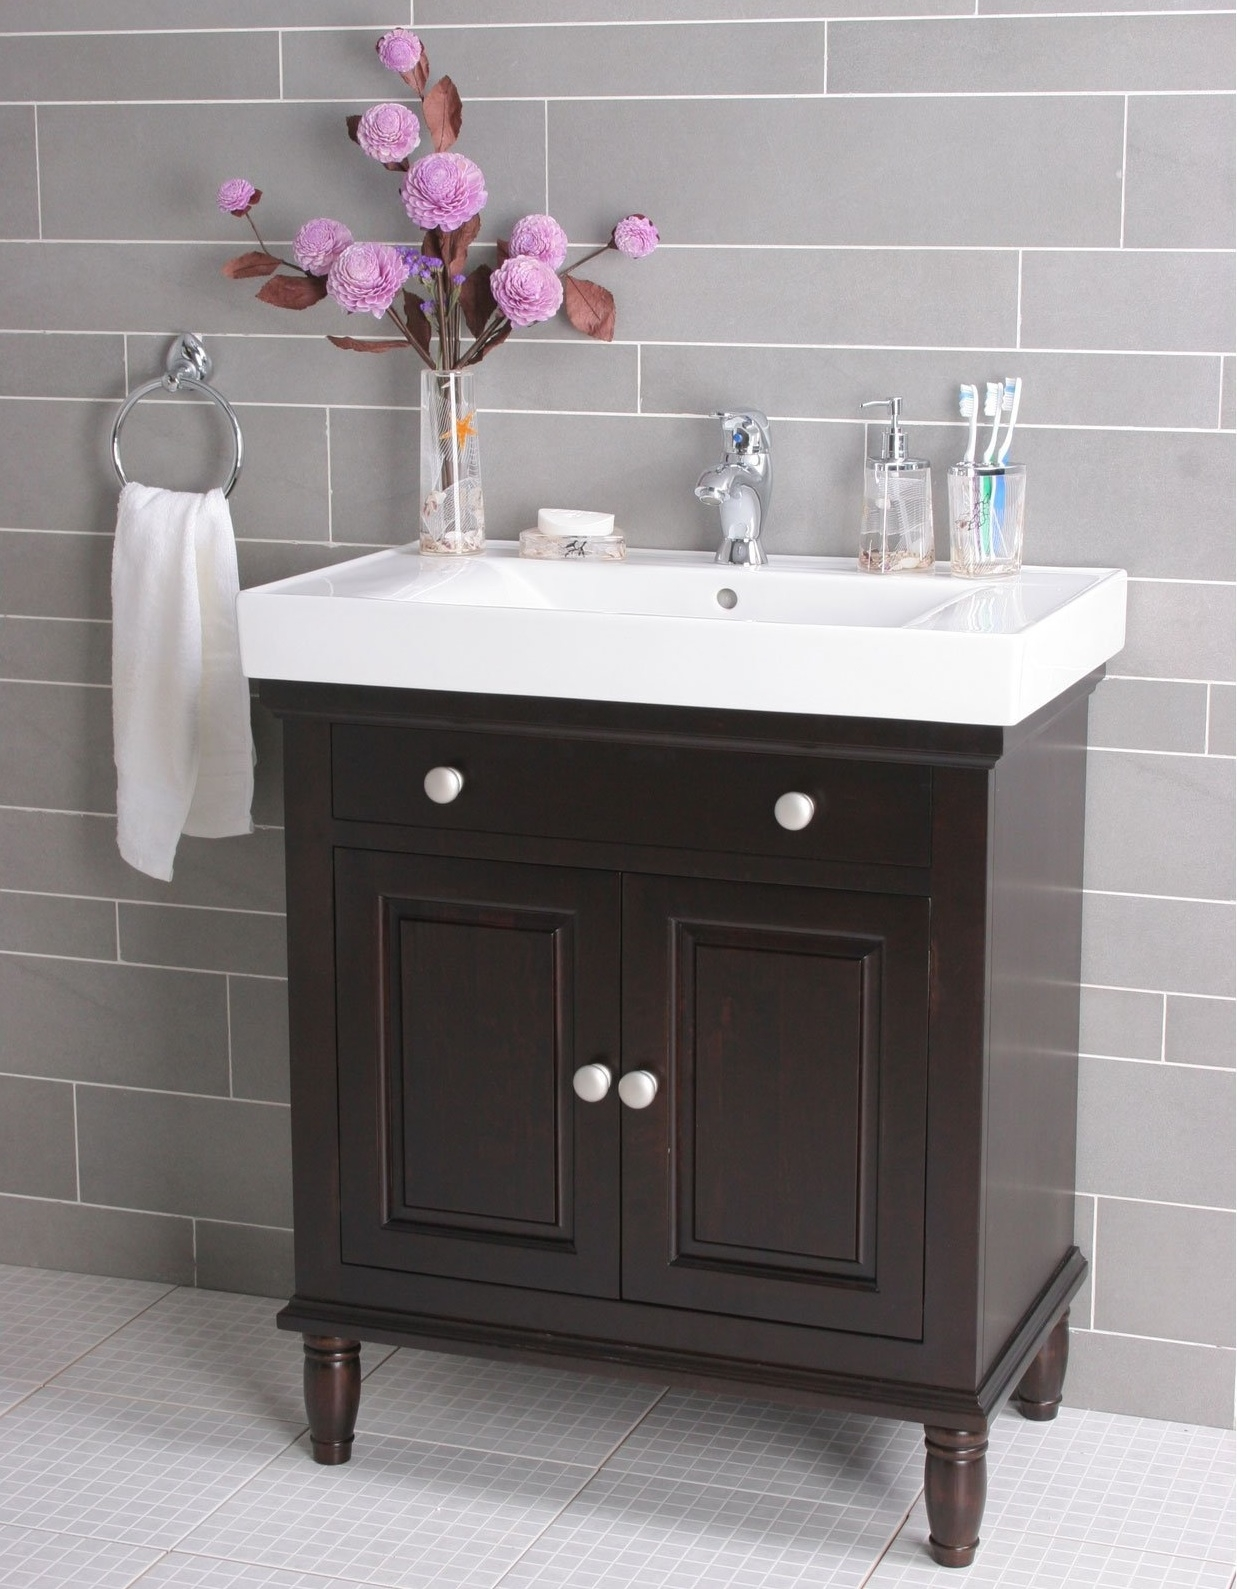 Lowes Bathroom Vanity And Sink In Contemporary Picture 7 Of 50 Layjao